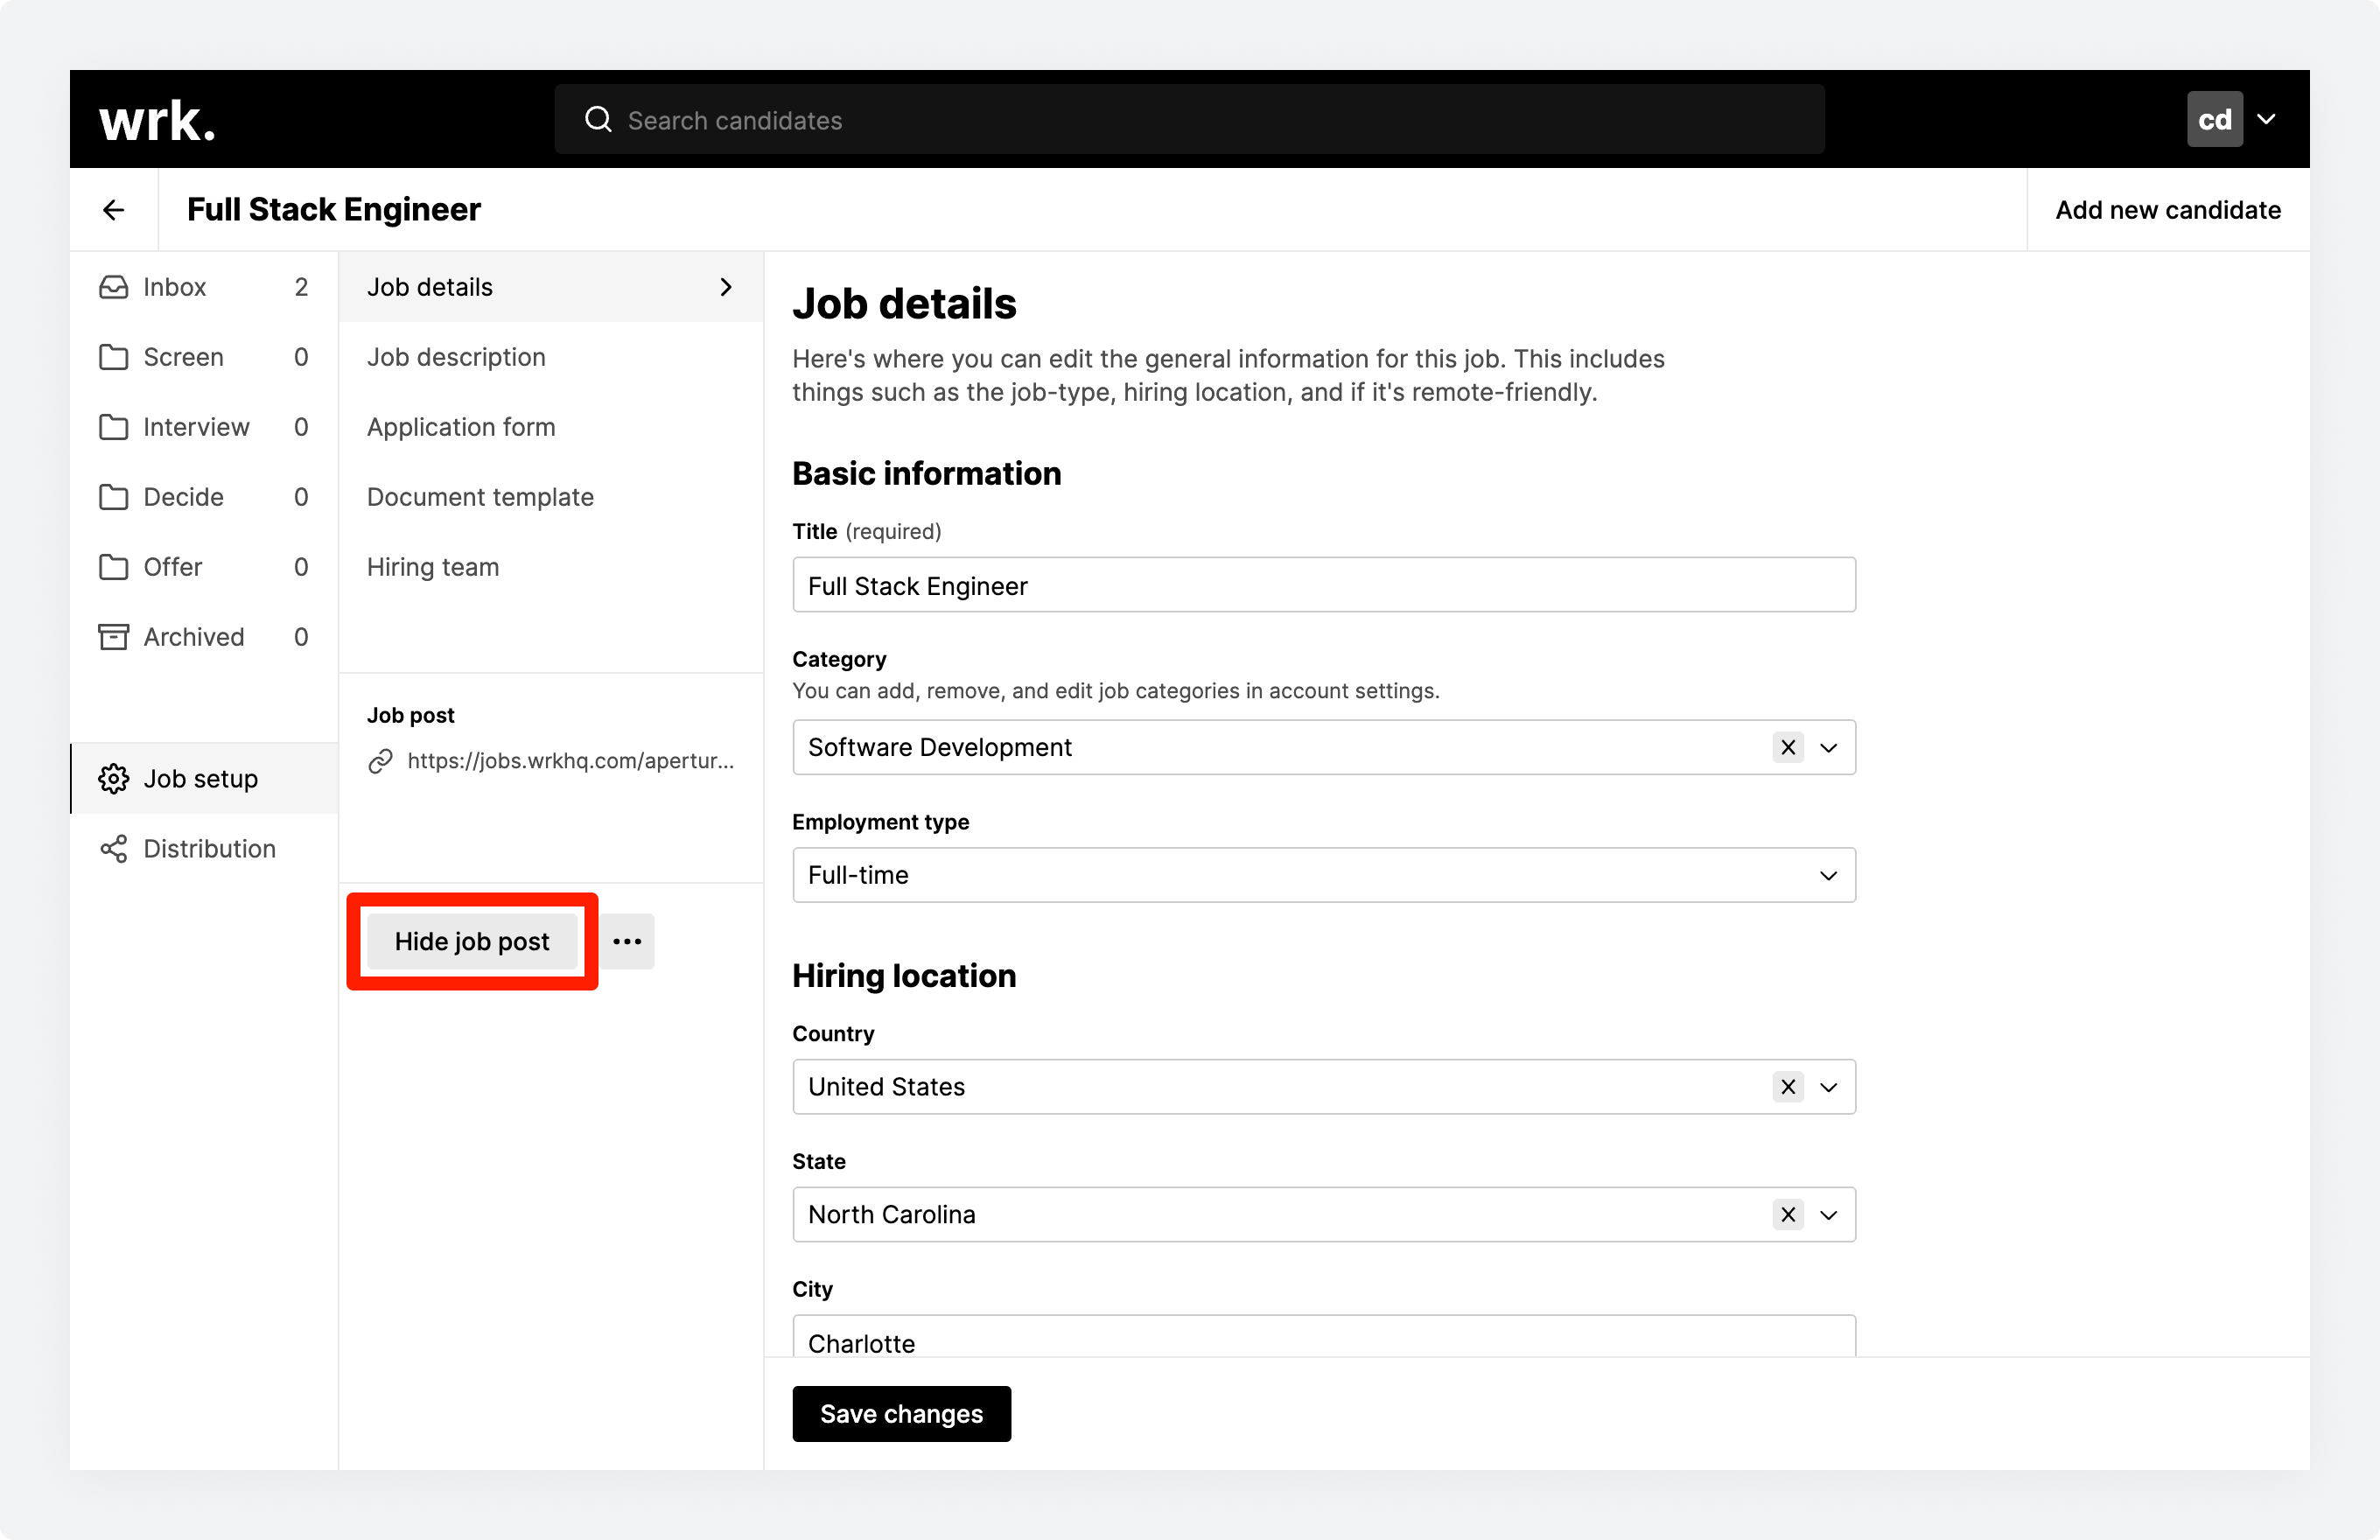 The 'Hide job post' button from within the Job setup screen in Wrk